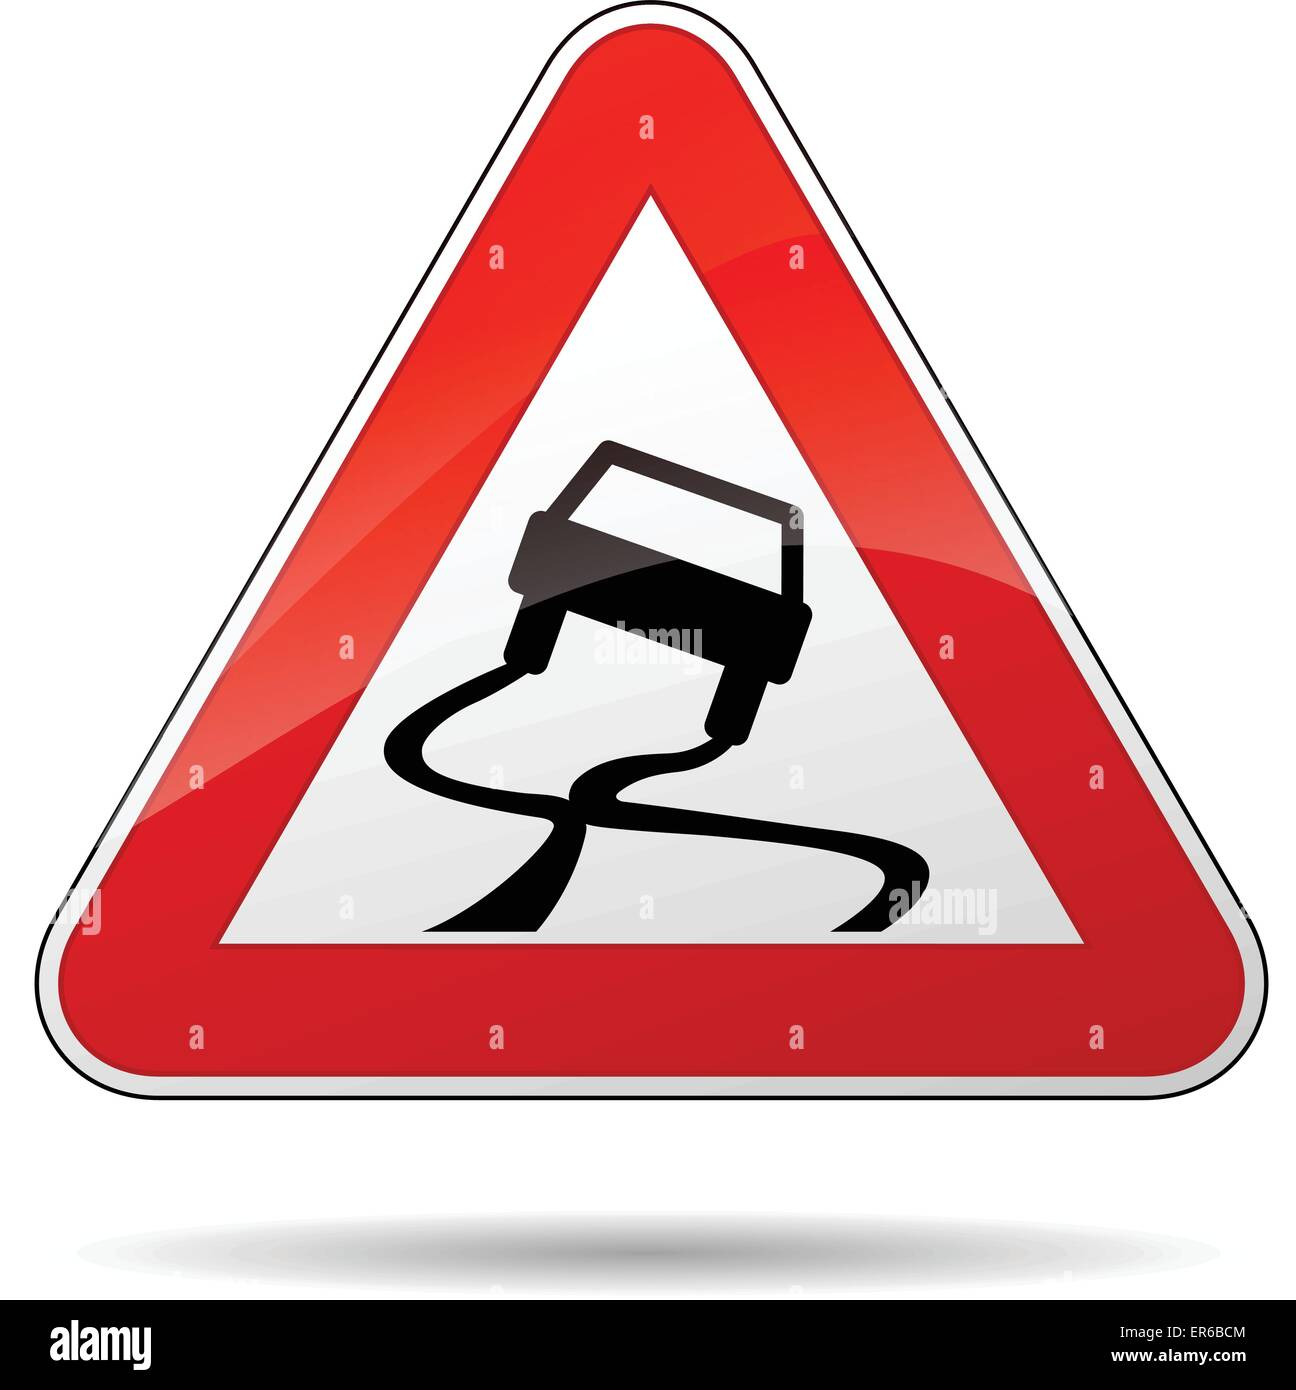 Vector illustration of triangle traffic sign for slippery road - Stock Vector